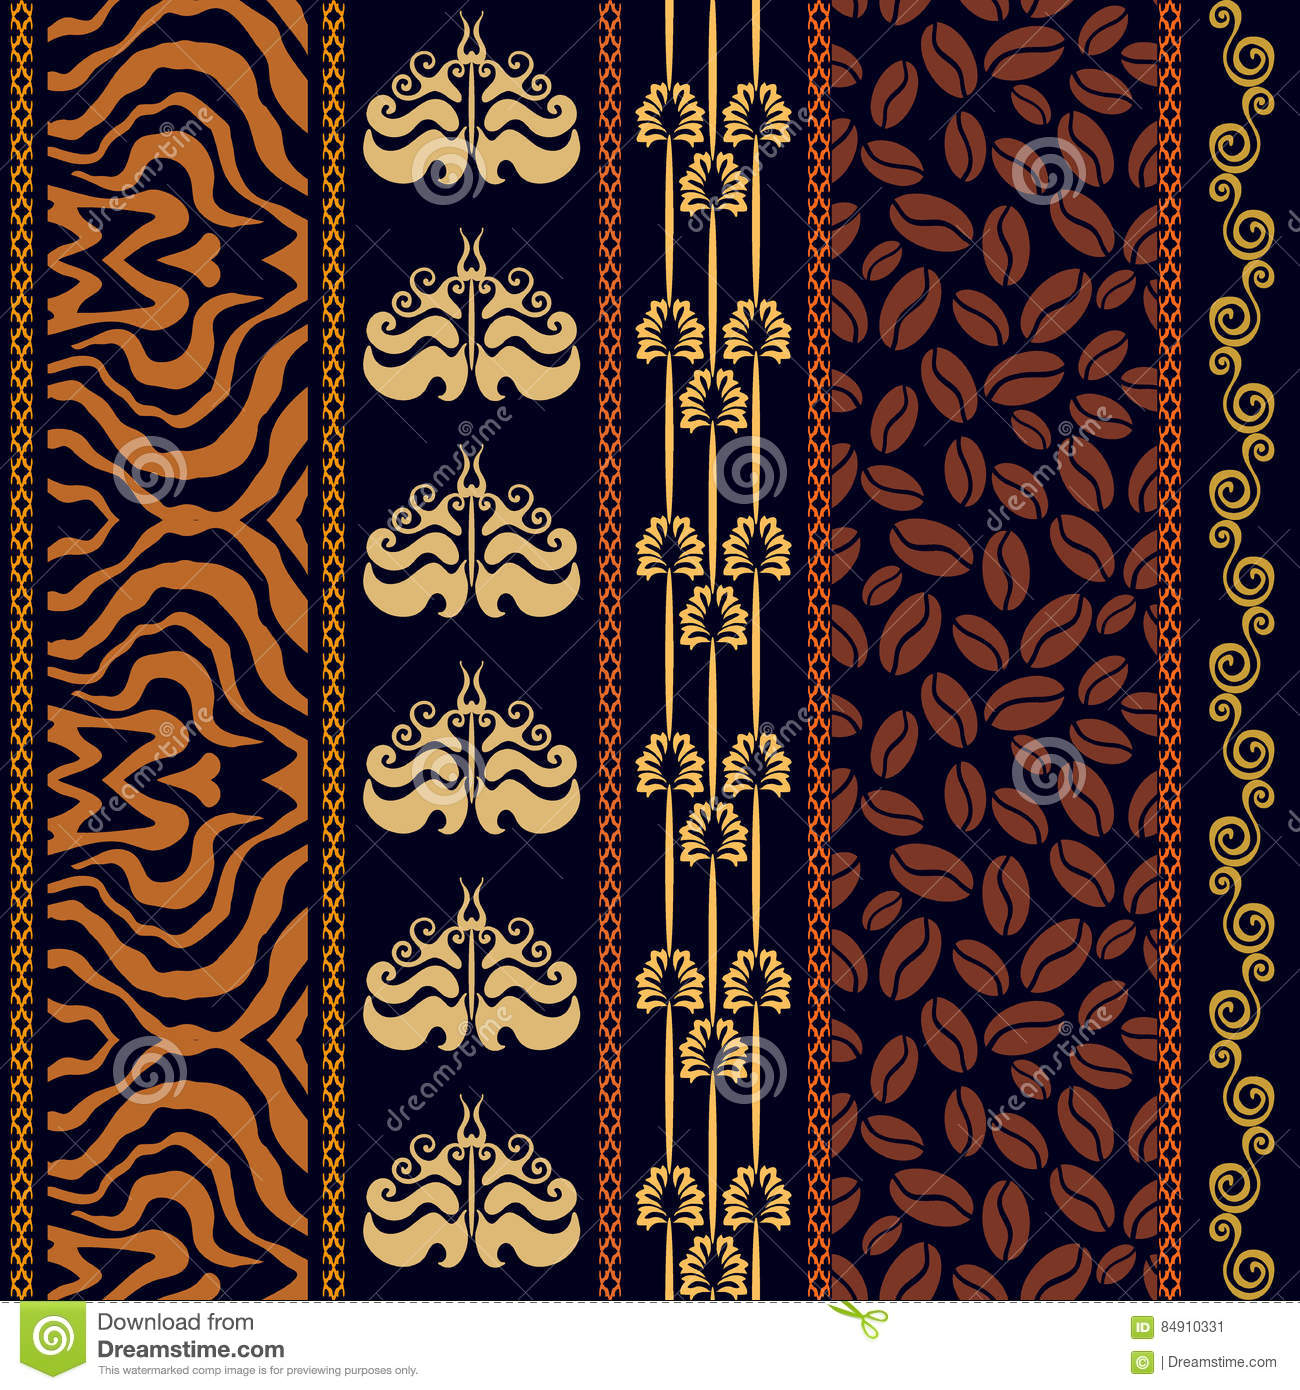 art deco vintage silk wallpaper with ethnic motifs and bohemian elements stock vector. Black Bedroom Furniture Sets. Home Design Ideas